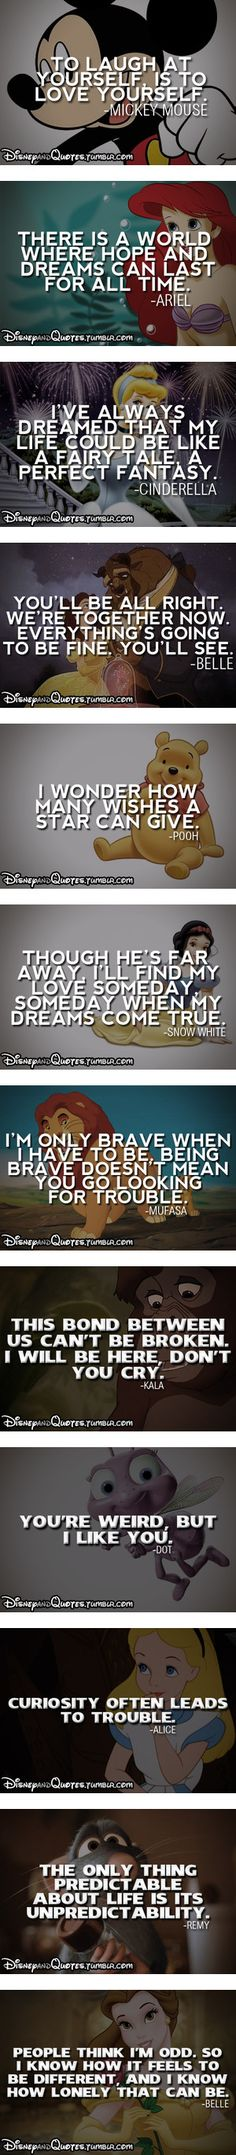 I like the Tarzan quote for a motherhood tattoo. And the pooh saying.